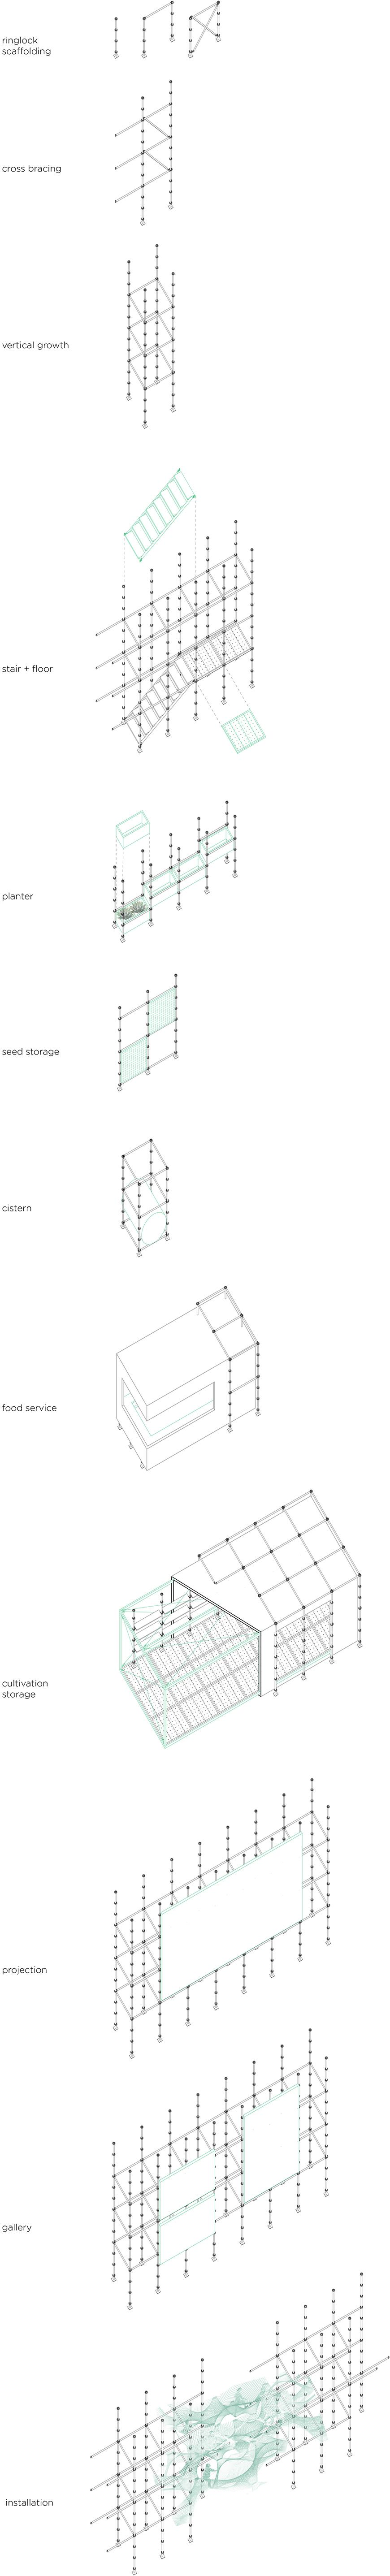 Column of axonometric diagrams showing different arragements of scaffolding-like structures for different space and site conditions.